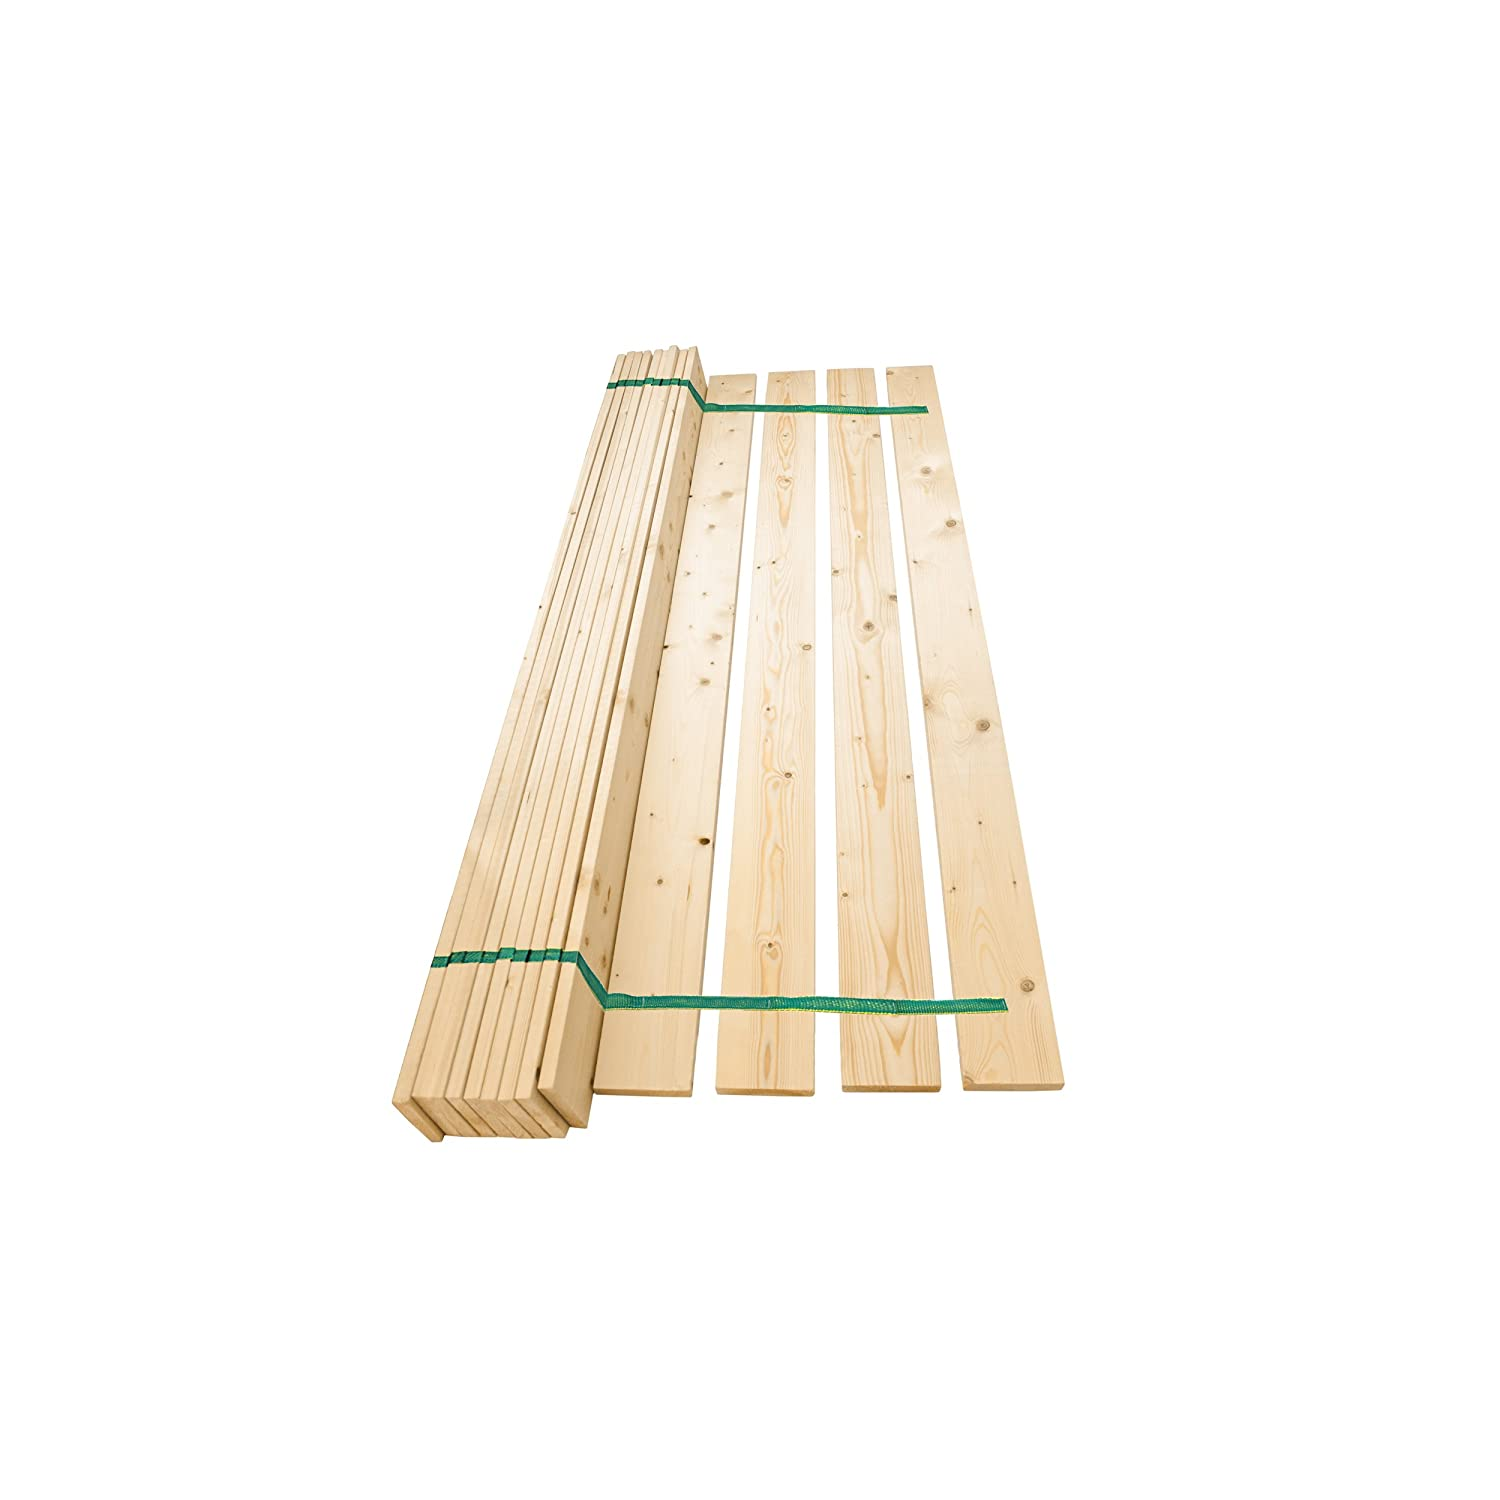 Replacement Flat Wood Bed Slats 4ft Small Double Solid Pine 120mm Wide